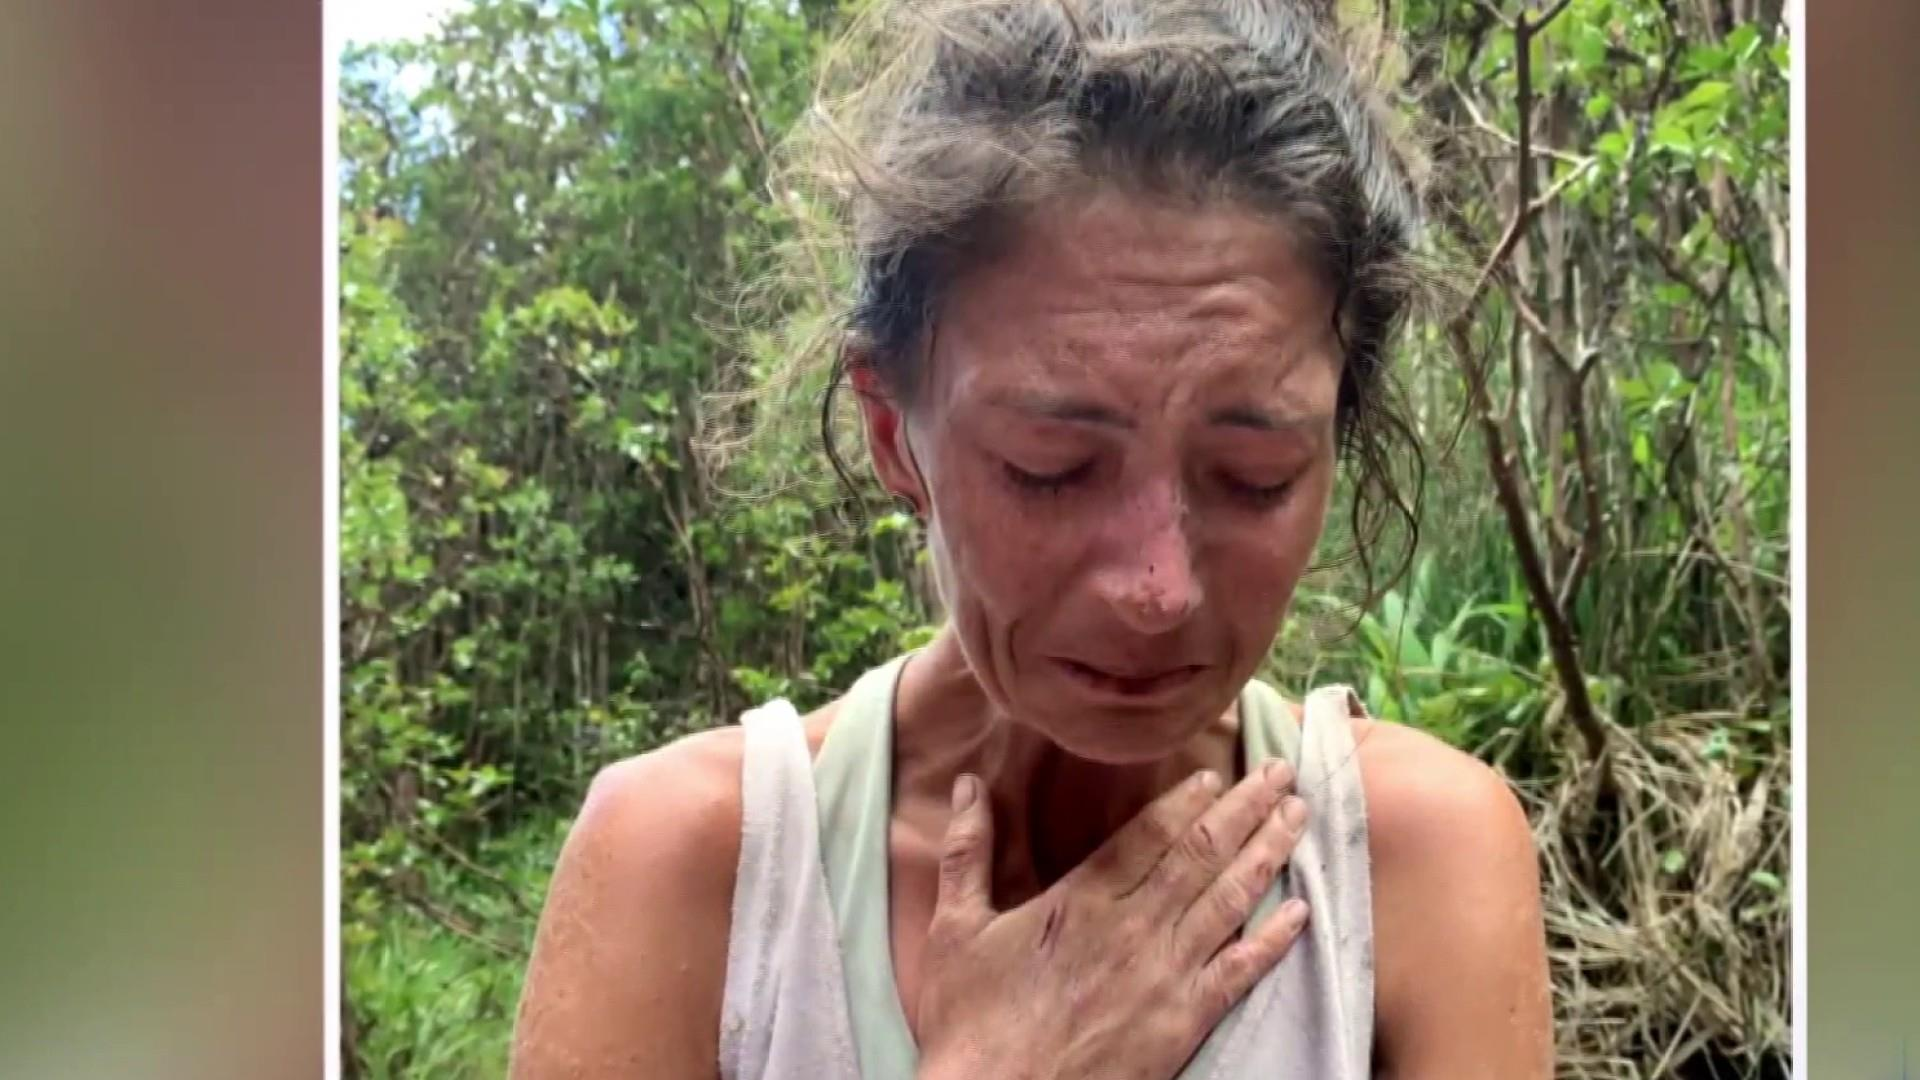 Missing Hawaii hiker says she 'chose life' after falling from cliff while lost in forest